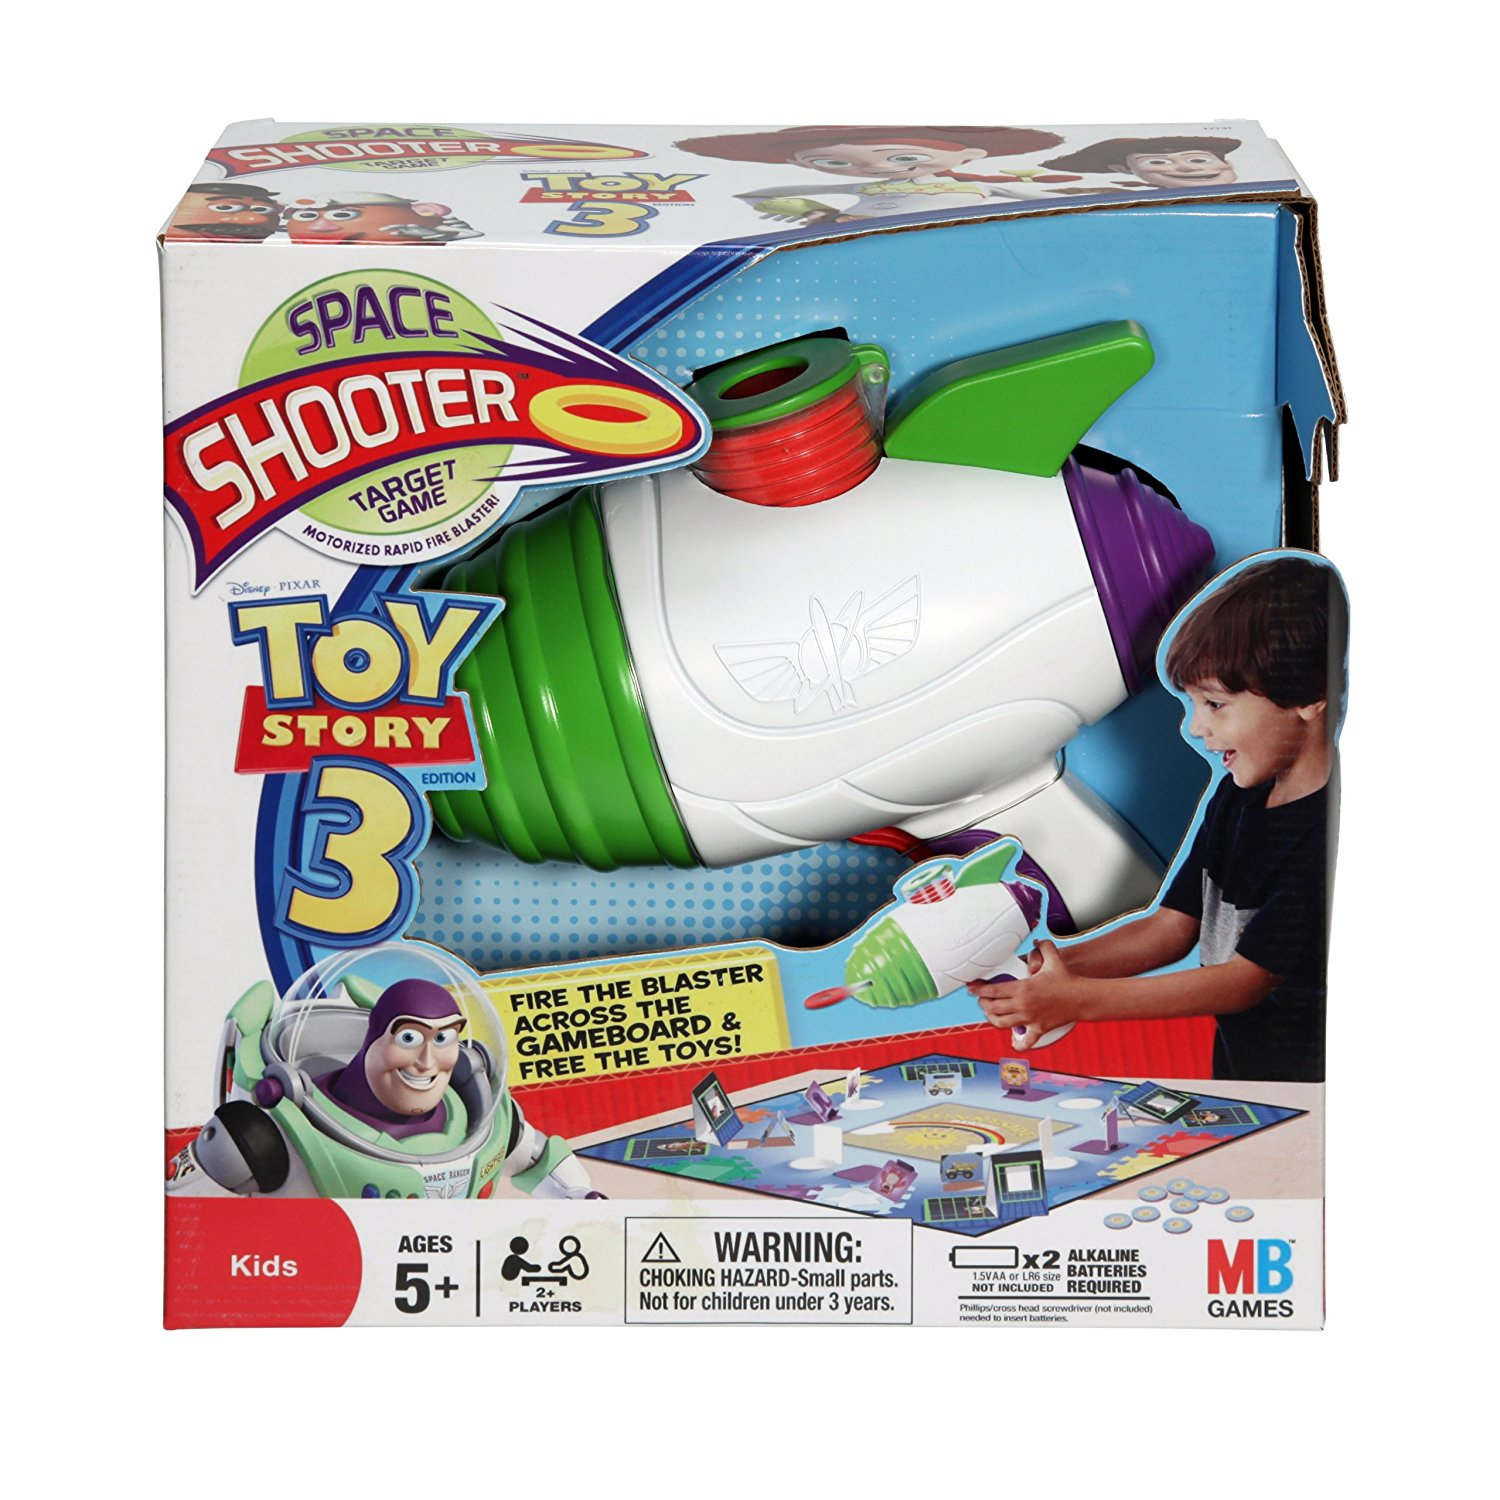 Toy Story 3 Space Shooter Target Game